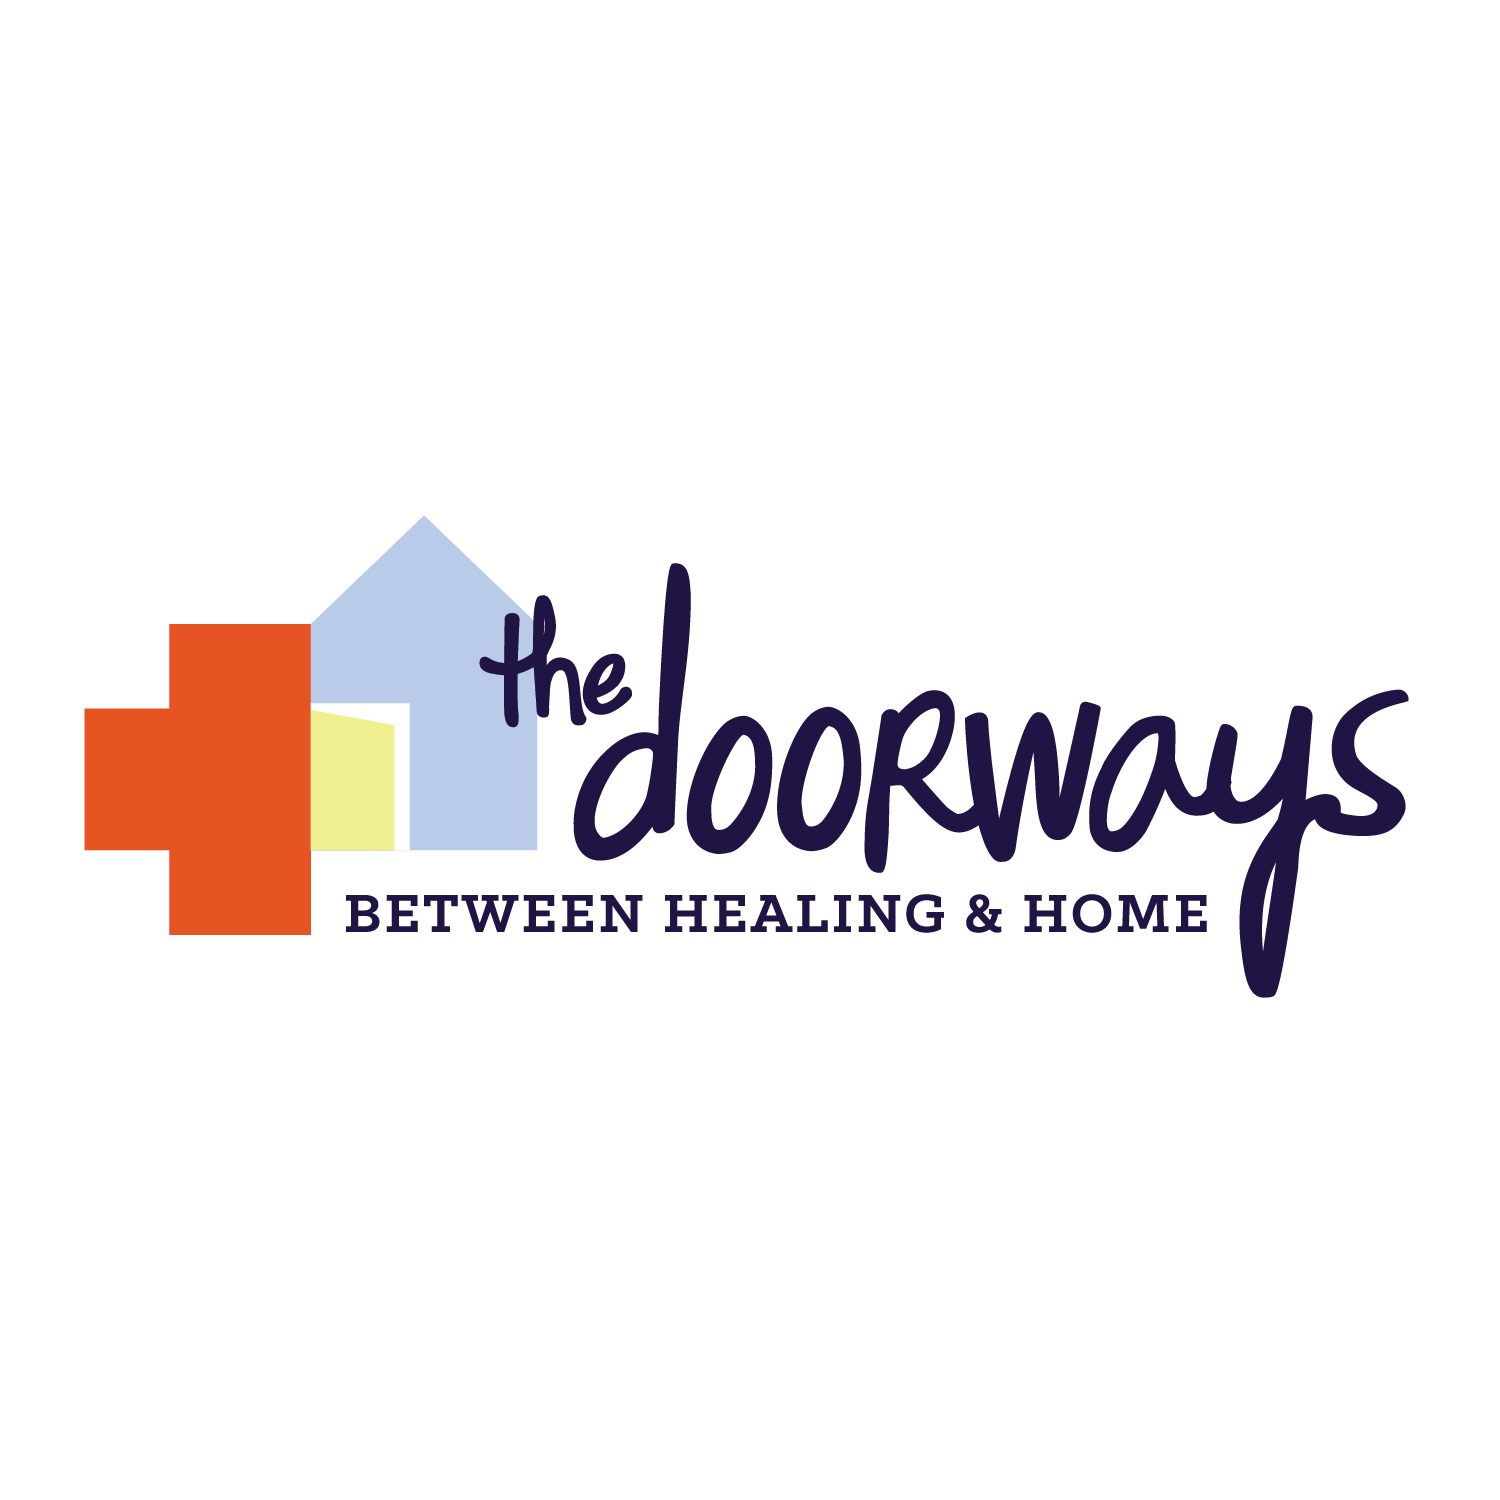 THEdoorways_logo_fullcolor-02_LINE.png